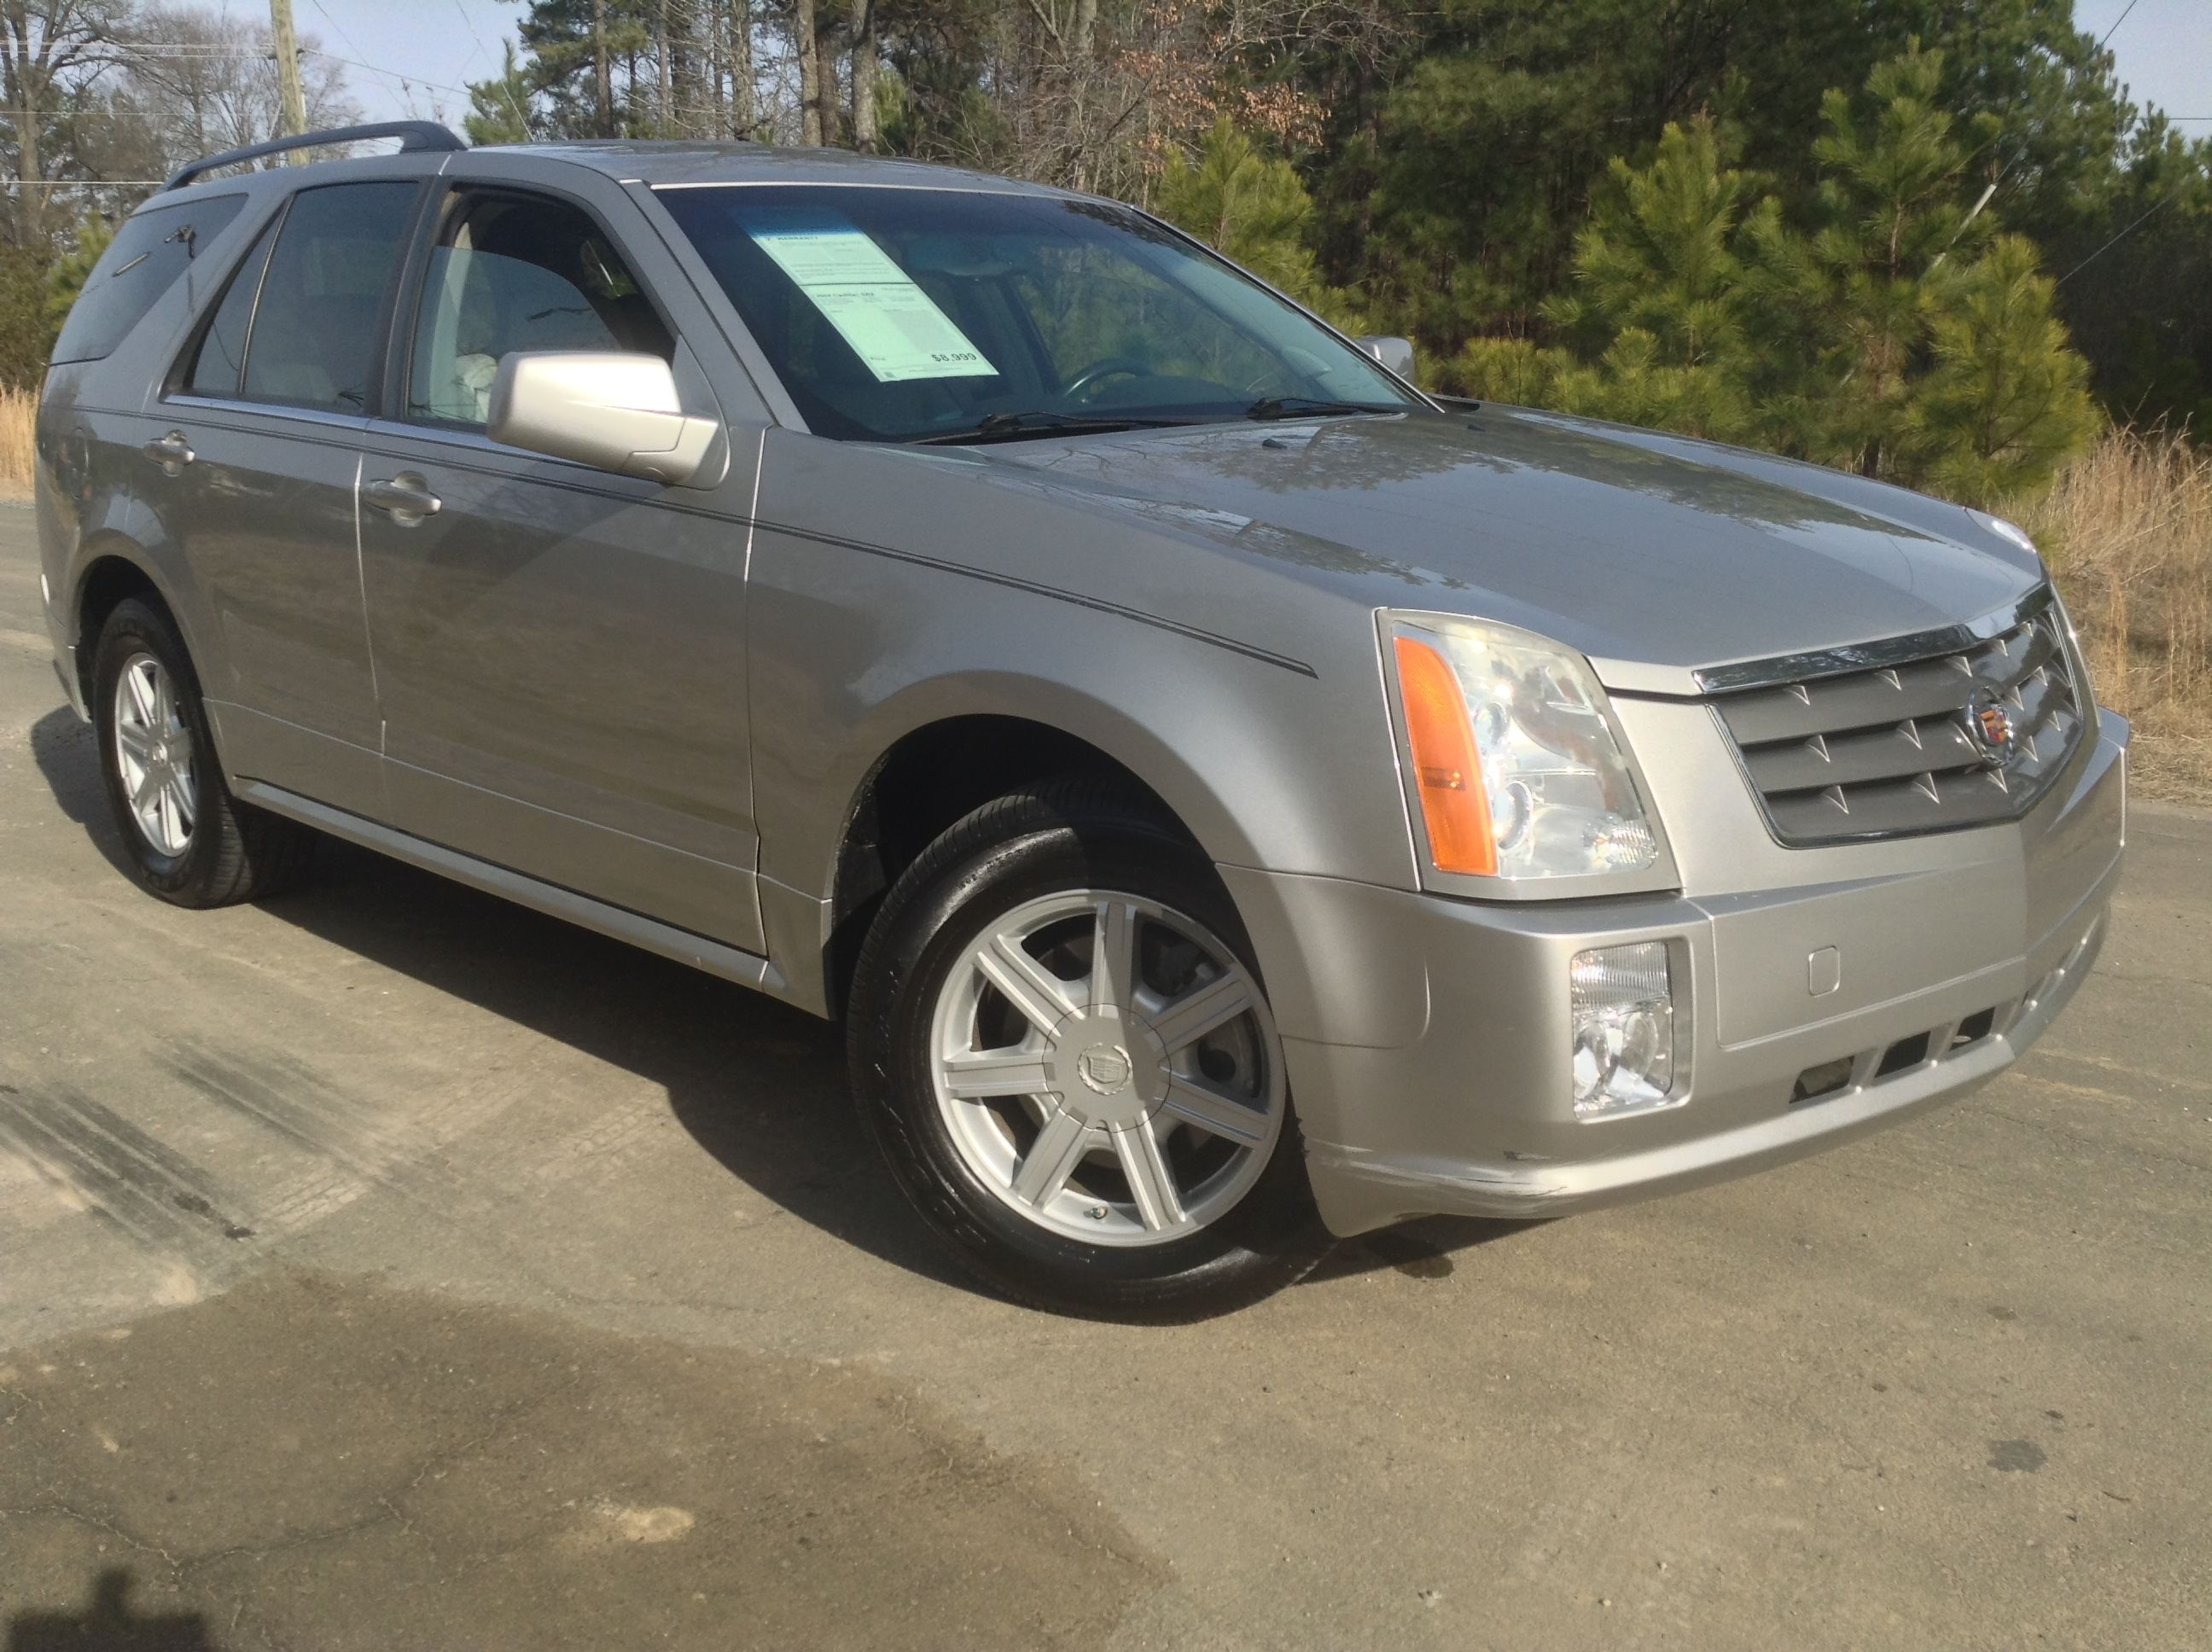 Used 2004 CADILLAC SRX For Sale | Durham NC | 2004 CADILLAC SRX For